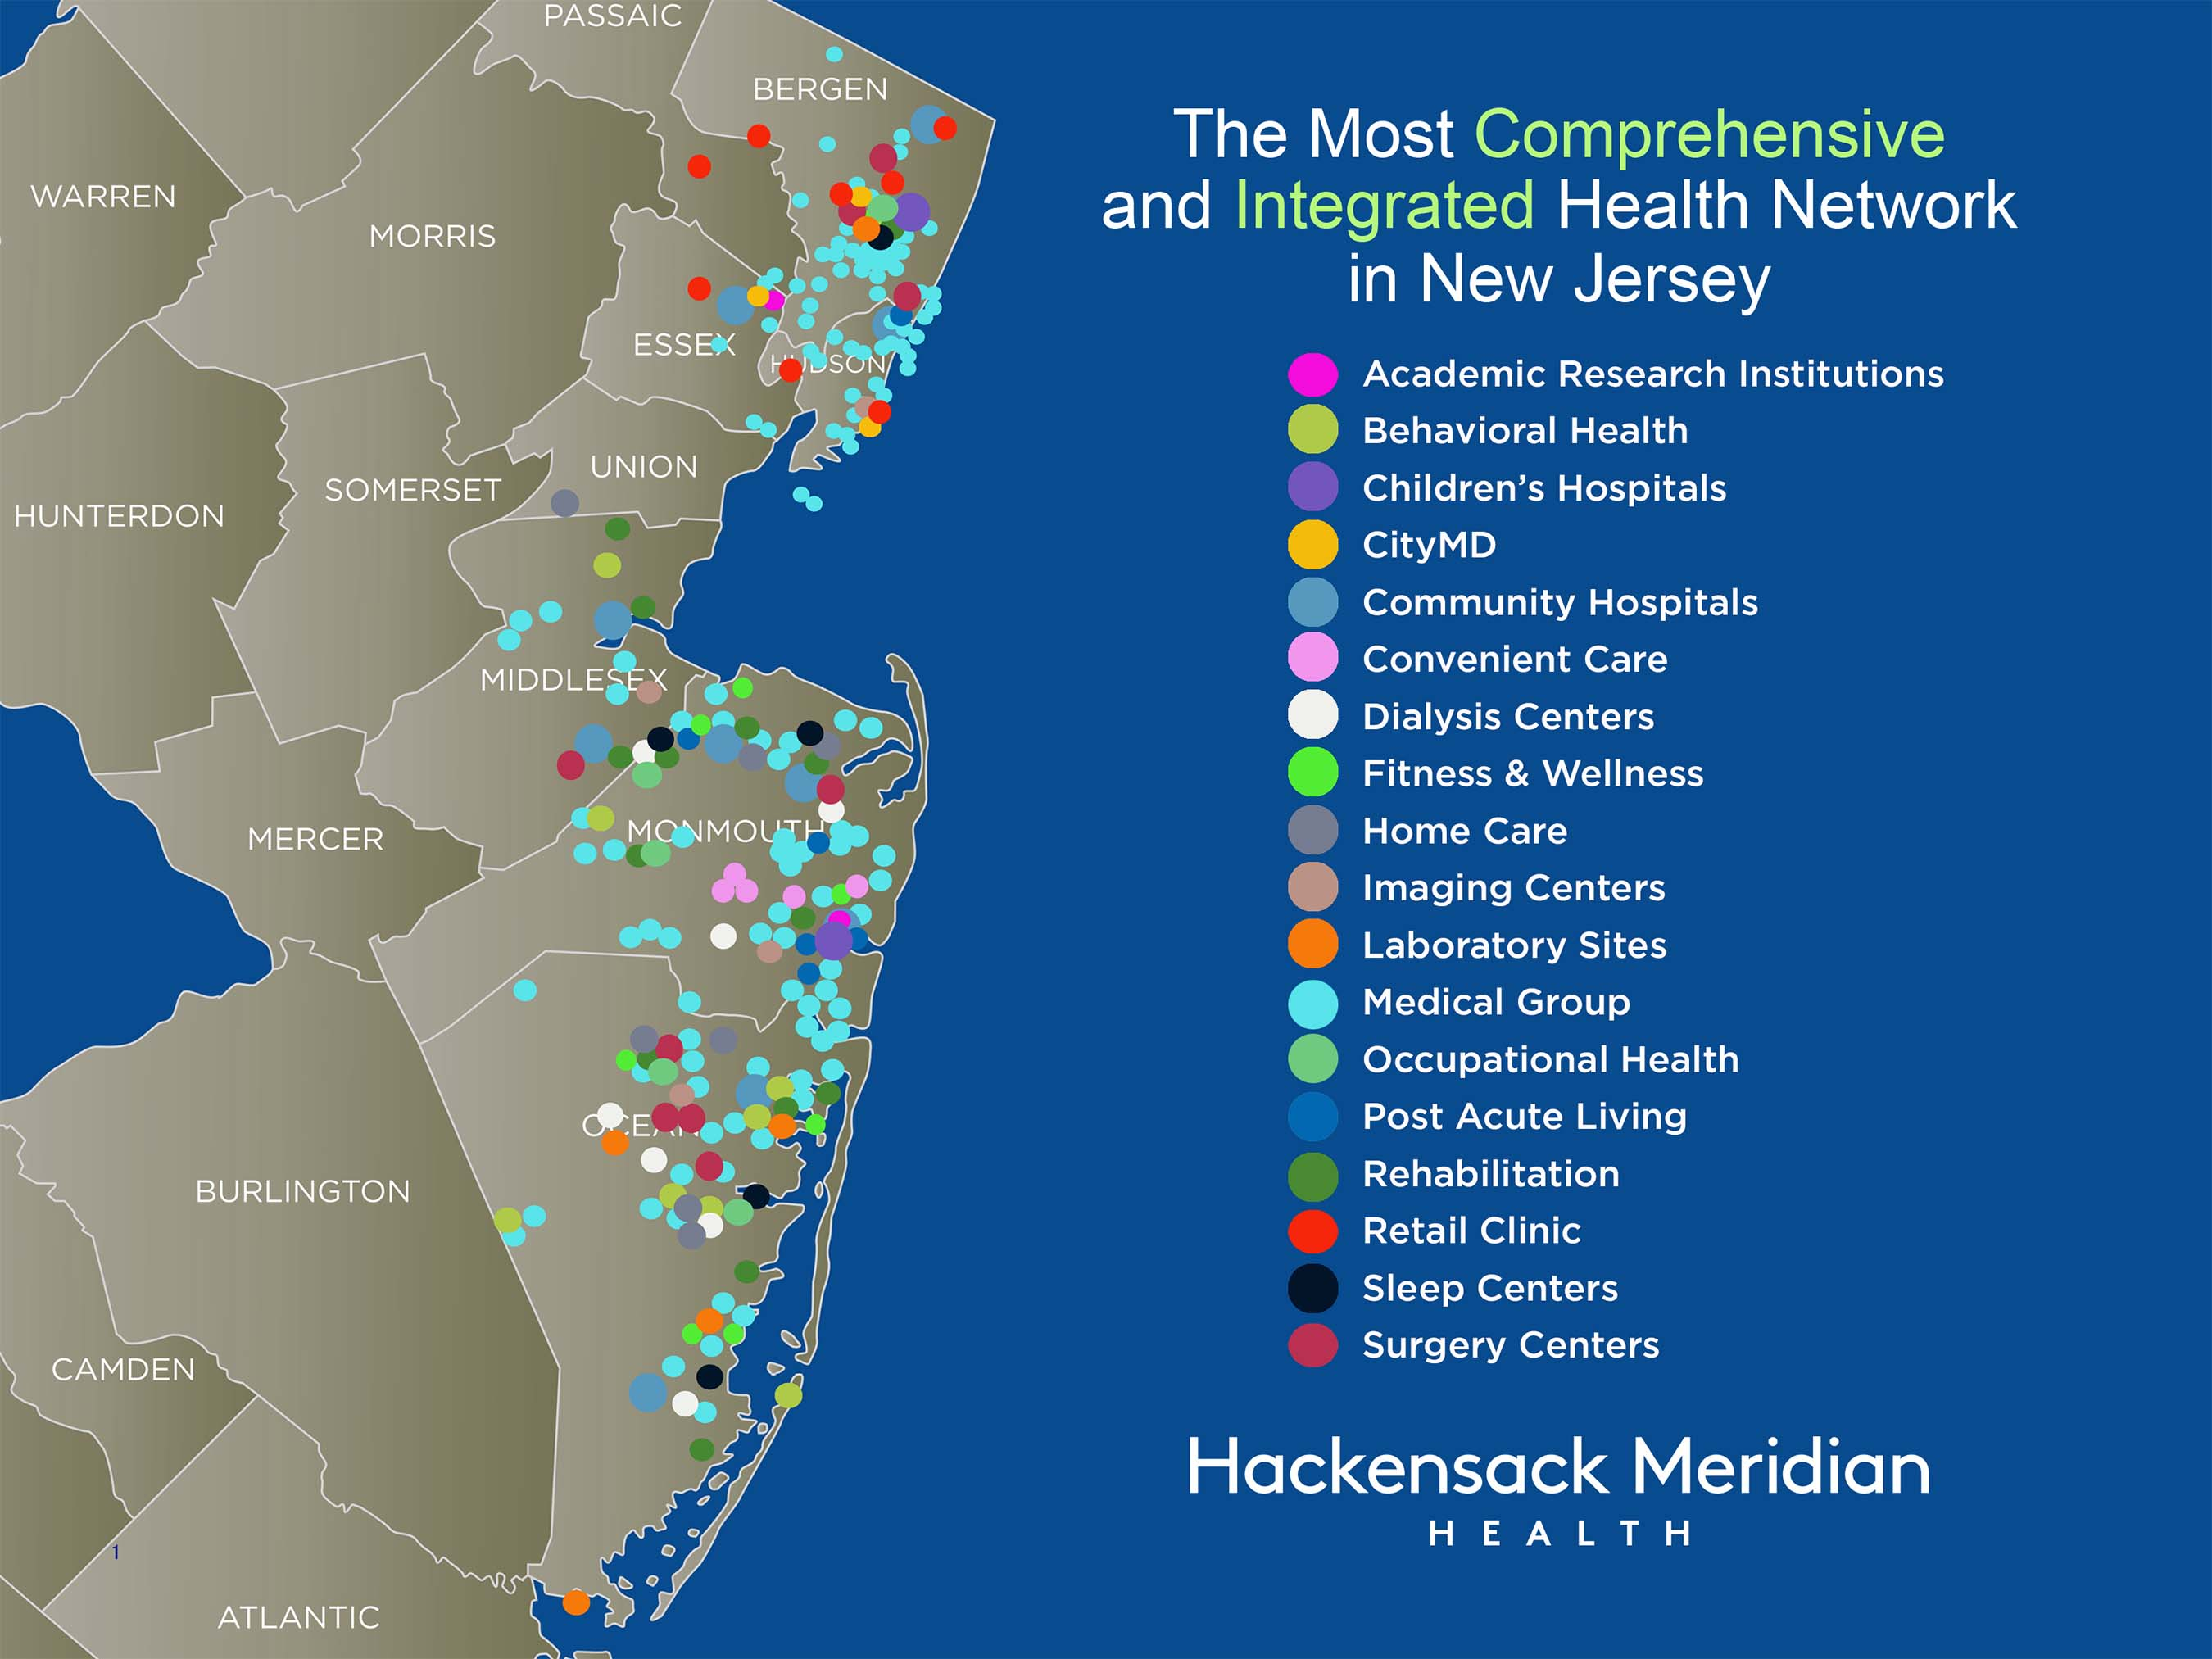 Hackensack Meridian Health will serve a much broader geography, expanding access to top specialists and services — Over two-thirds (70%) of the statewide population is within 15 miles of one or more Hackensack Meridian Health facilities — Approximately 95% of the population within our market (almost six million people) can reach a service location in 20 minutes or less